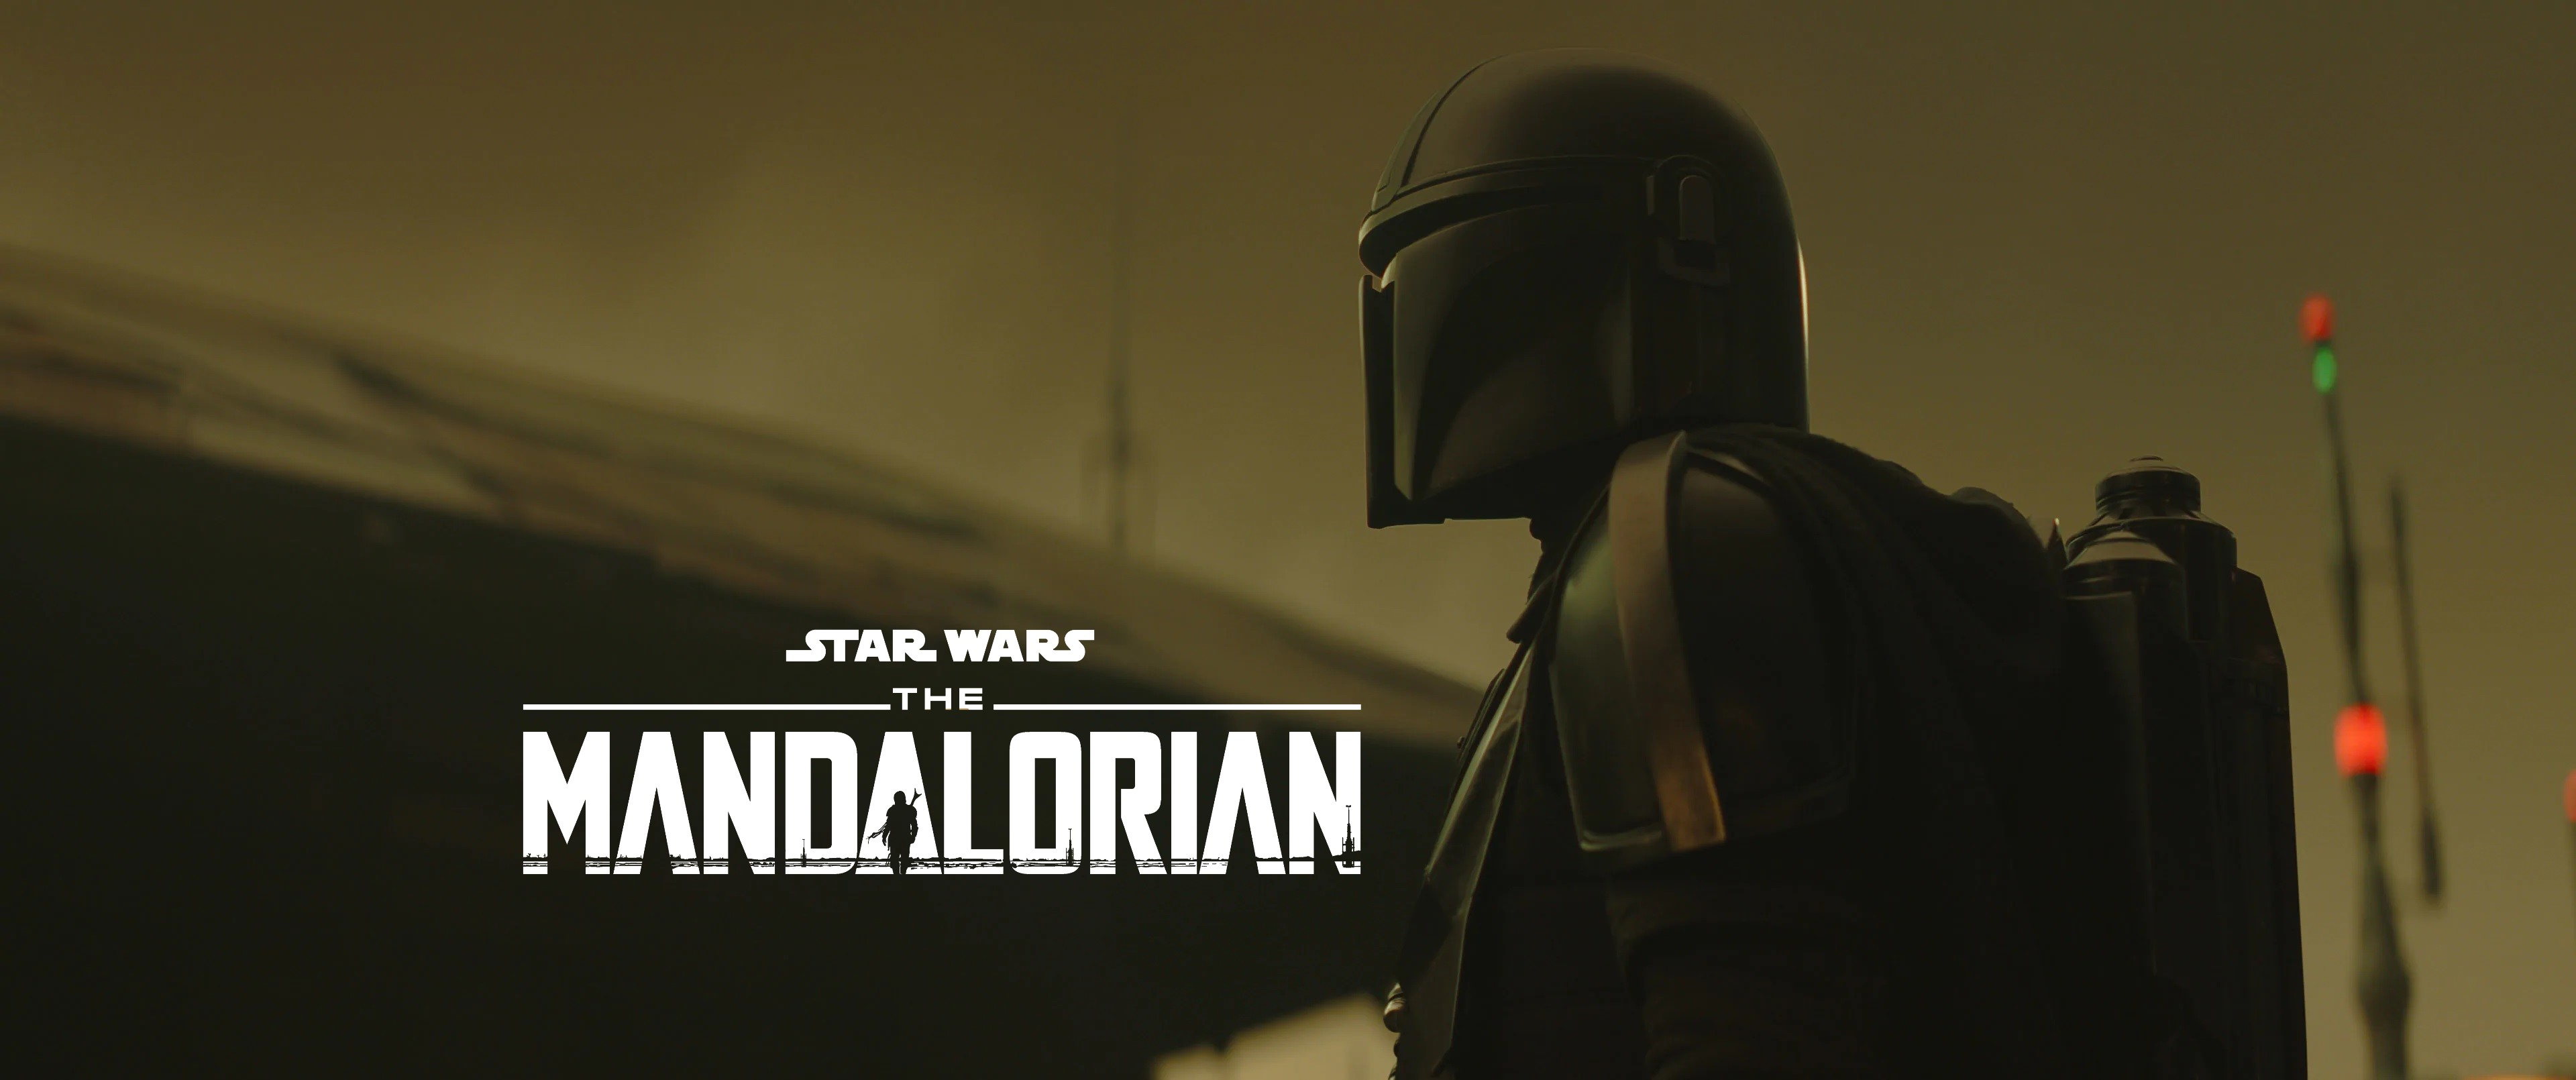 The Mandalorian Chapter 13 (Image courtesy of Disney/Lucasfilm)